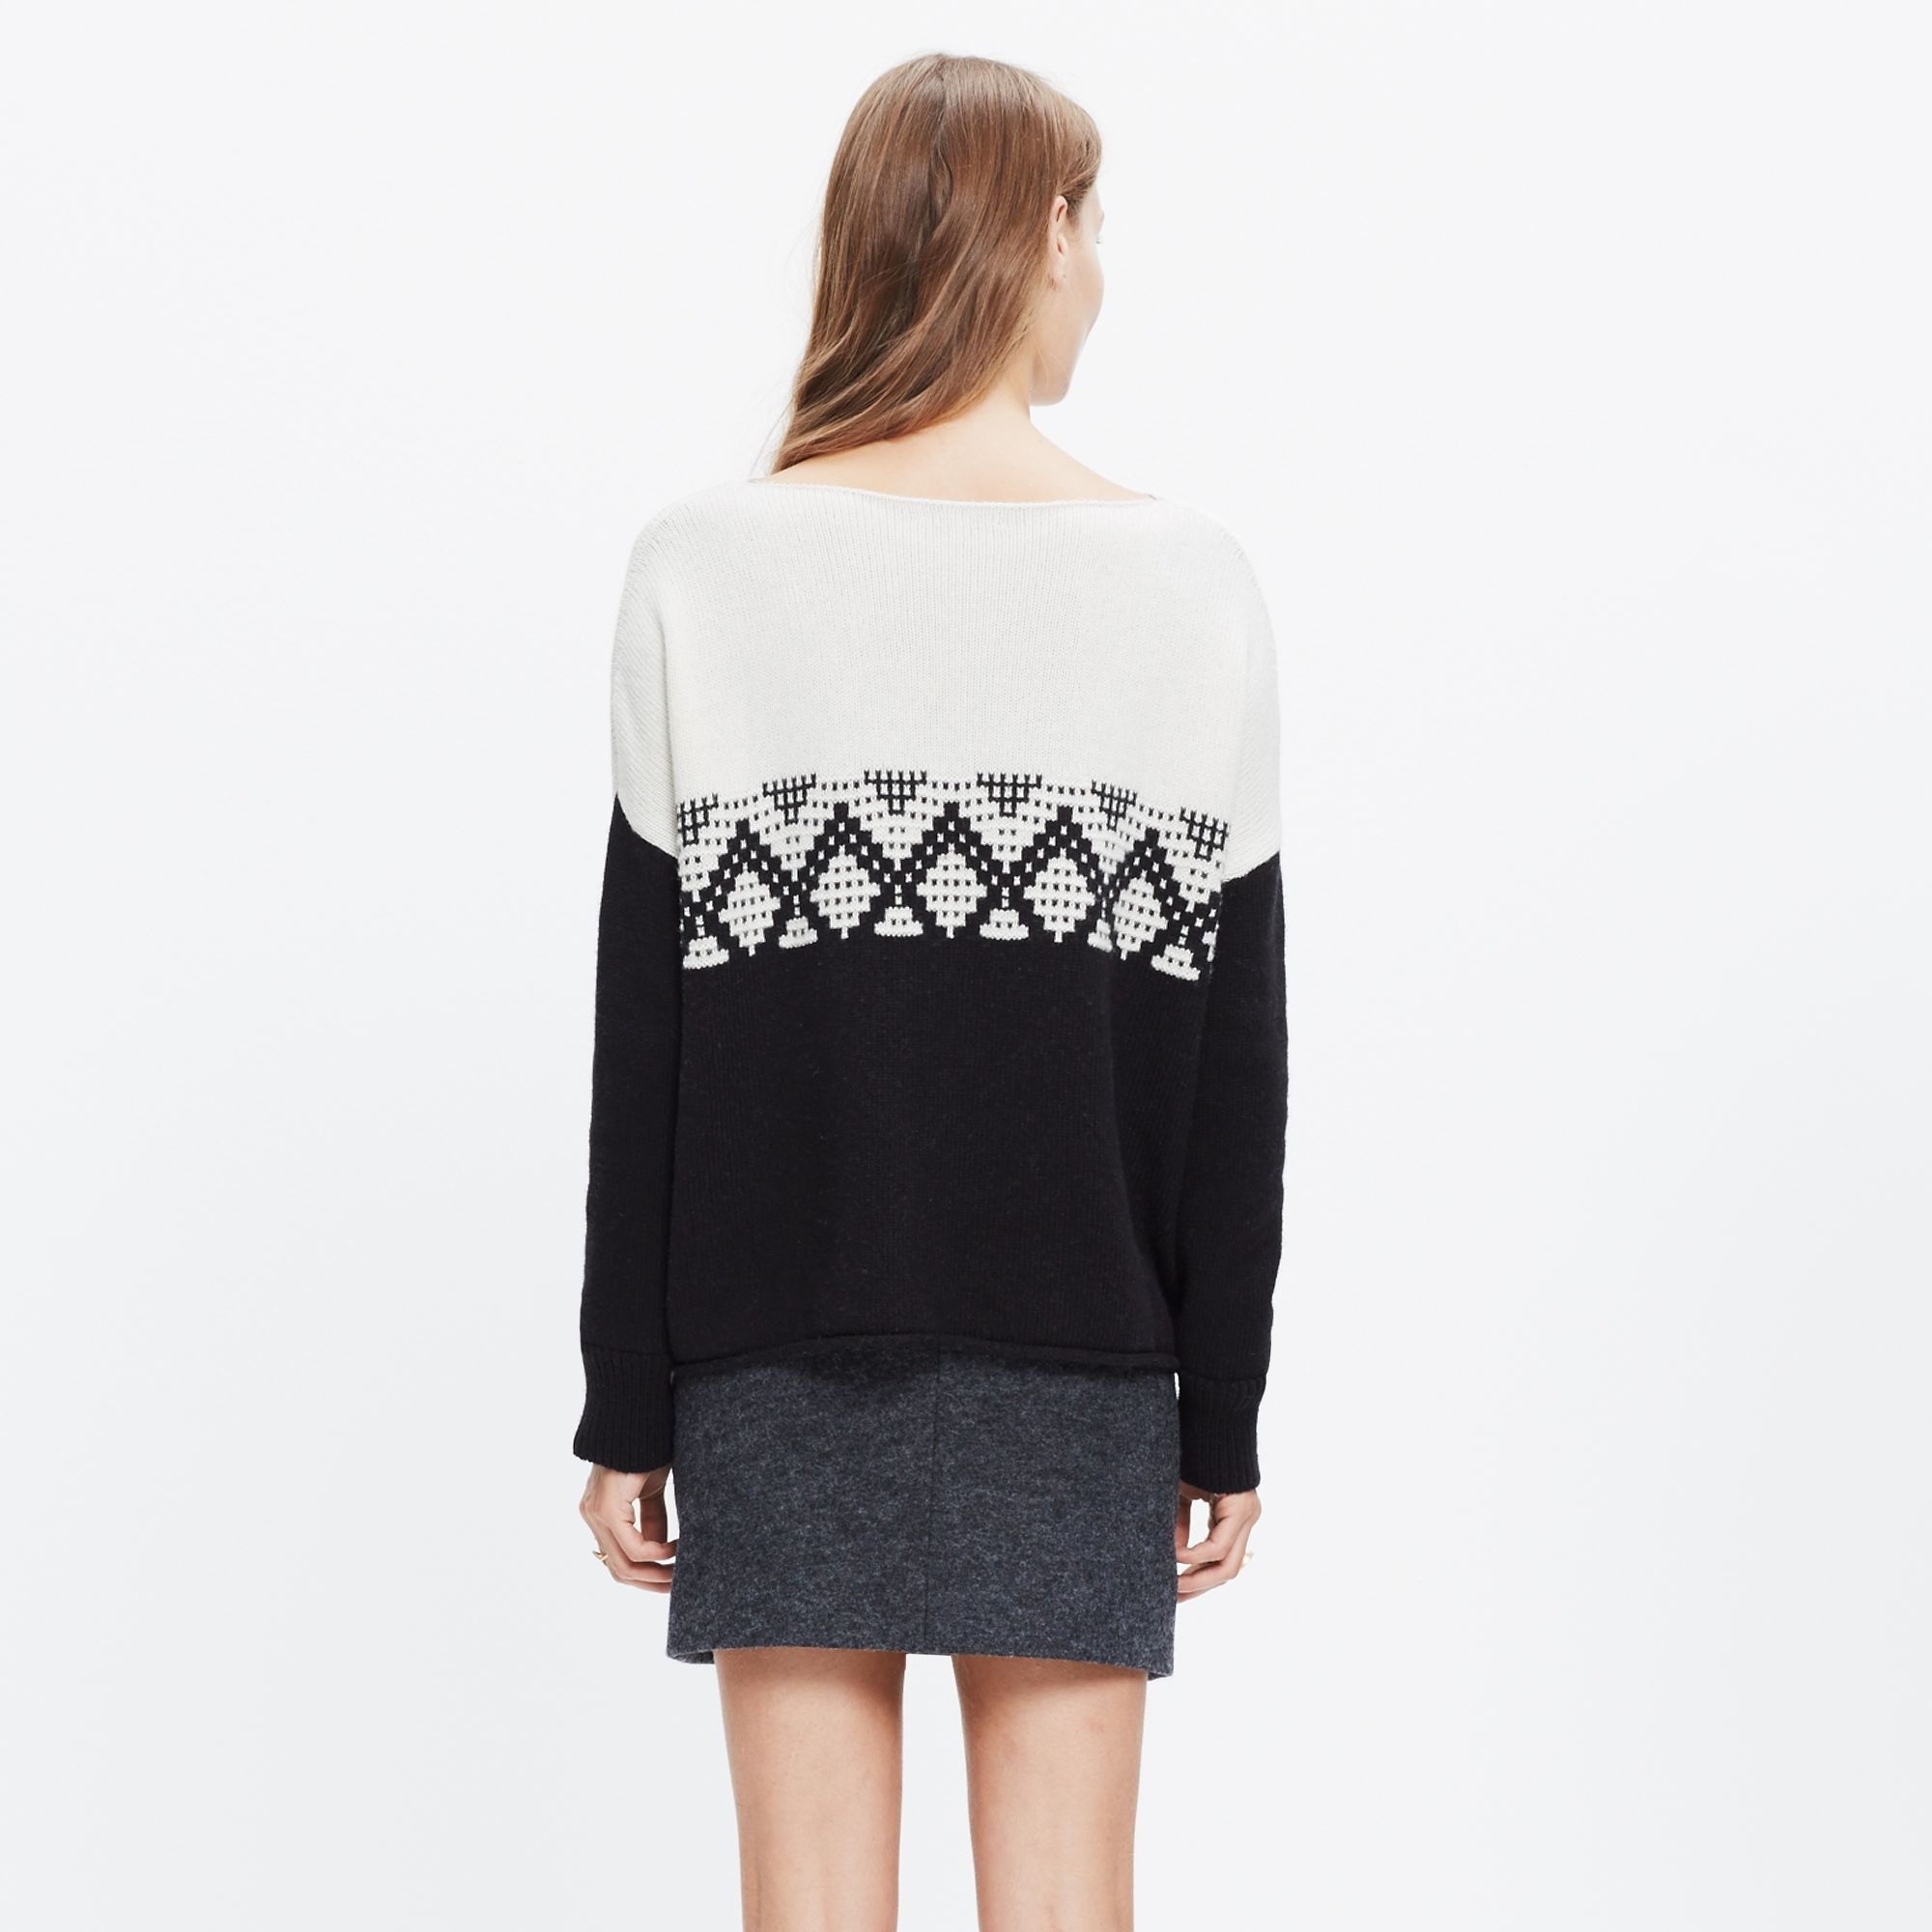 Madewell Contrast Fair Isle Pullover Sweater in Black | Lyst